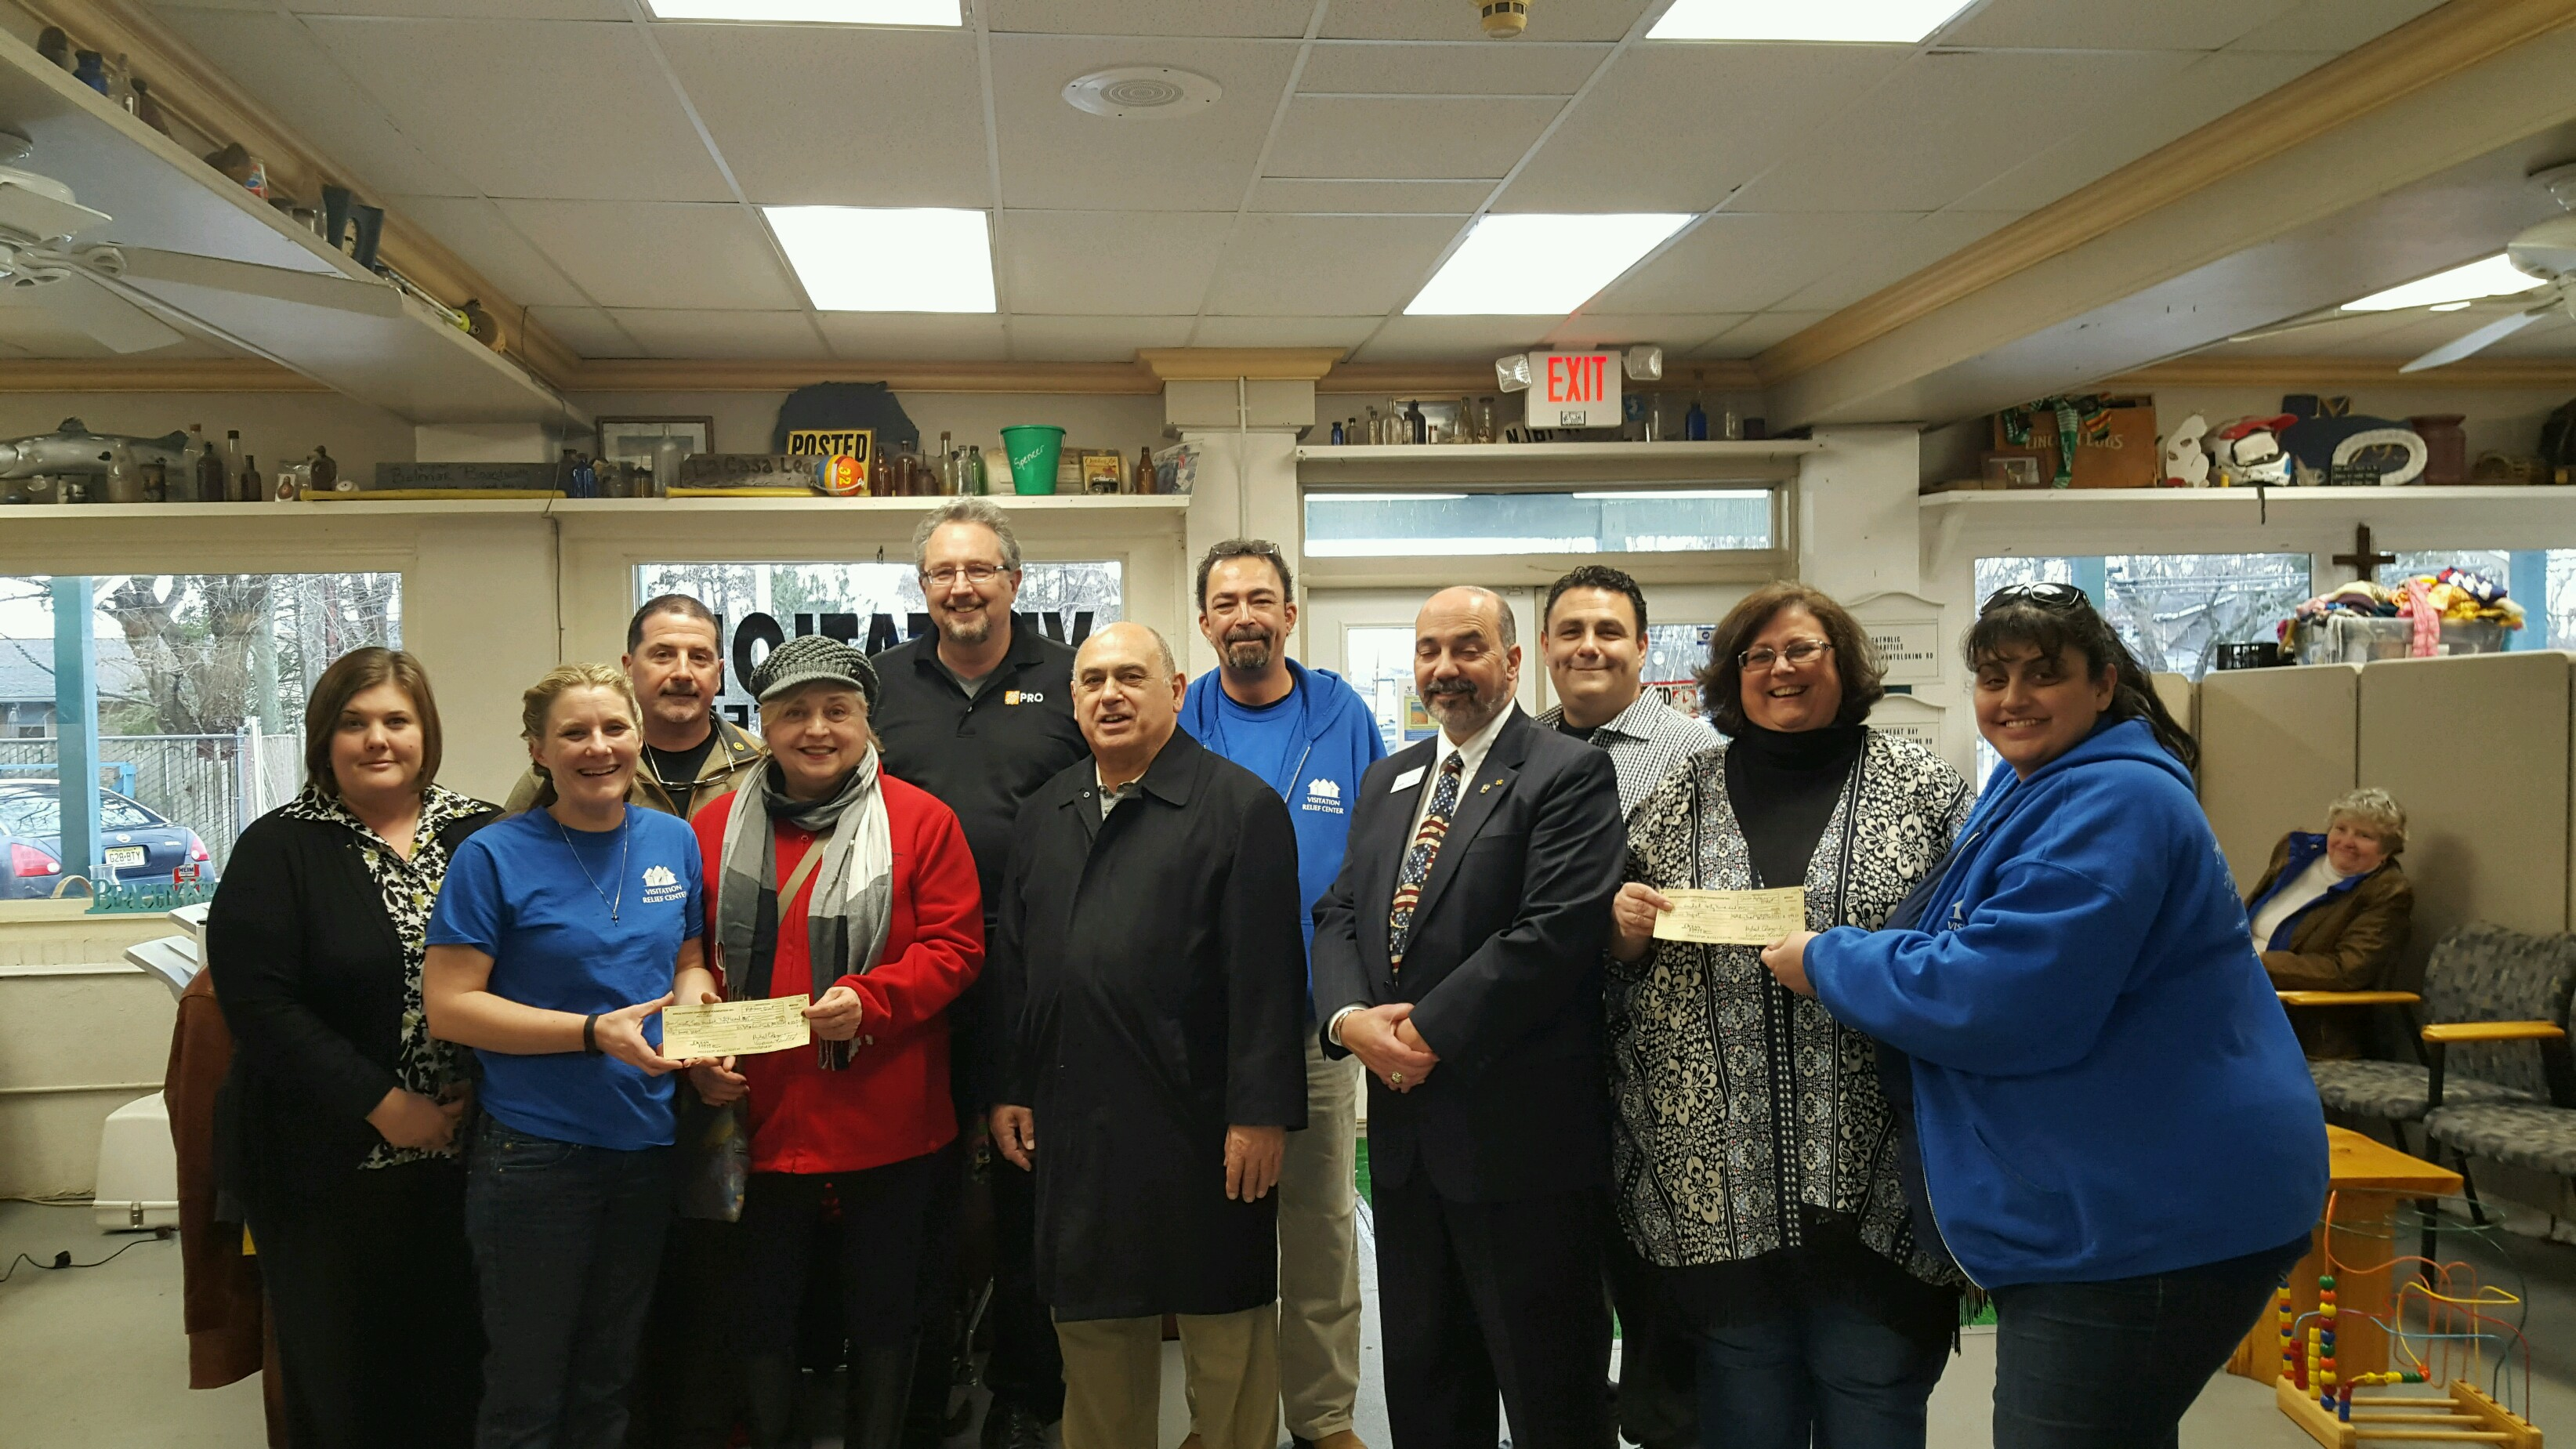 Members of the Brick Township Rotary Club present members of the Visitation Relief Center with a donation. (Photo: Brick Rotary)